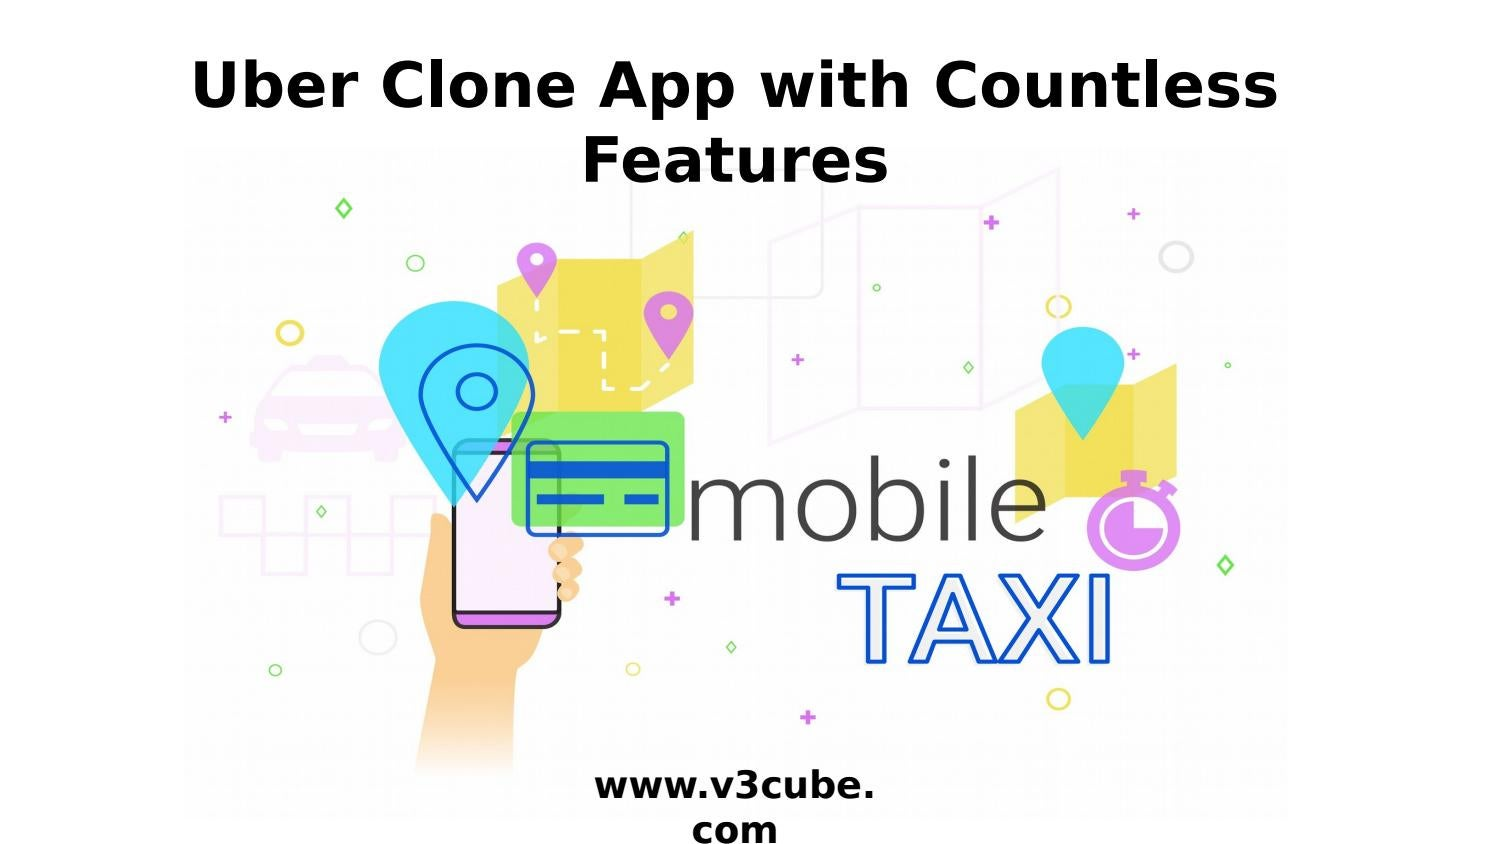 Uber Clone App with Countless Features by V3cube - issuu